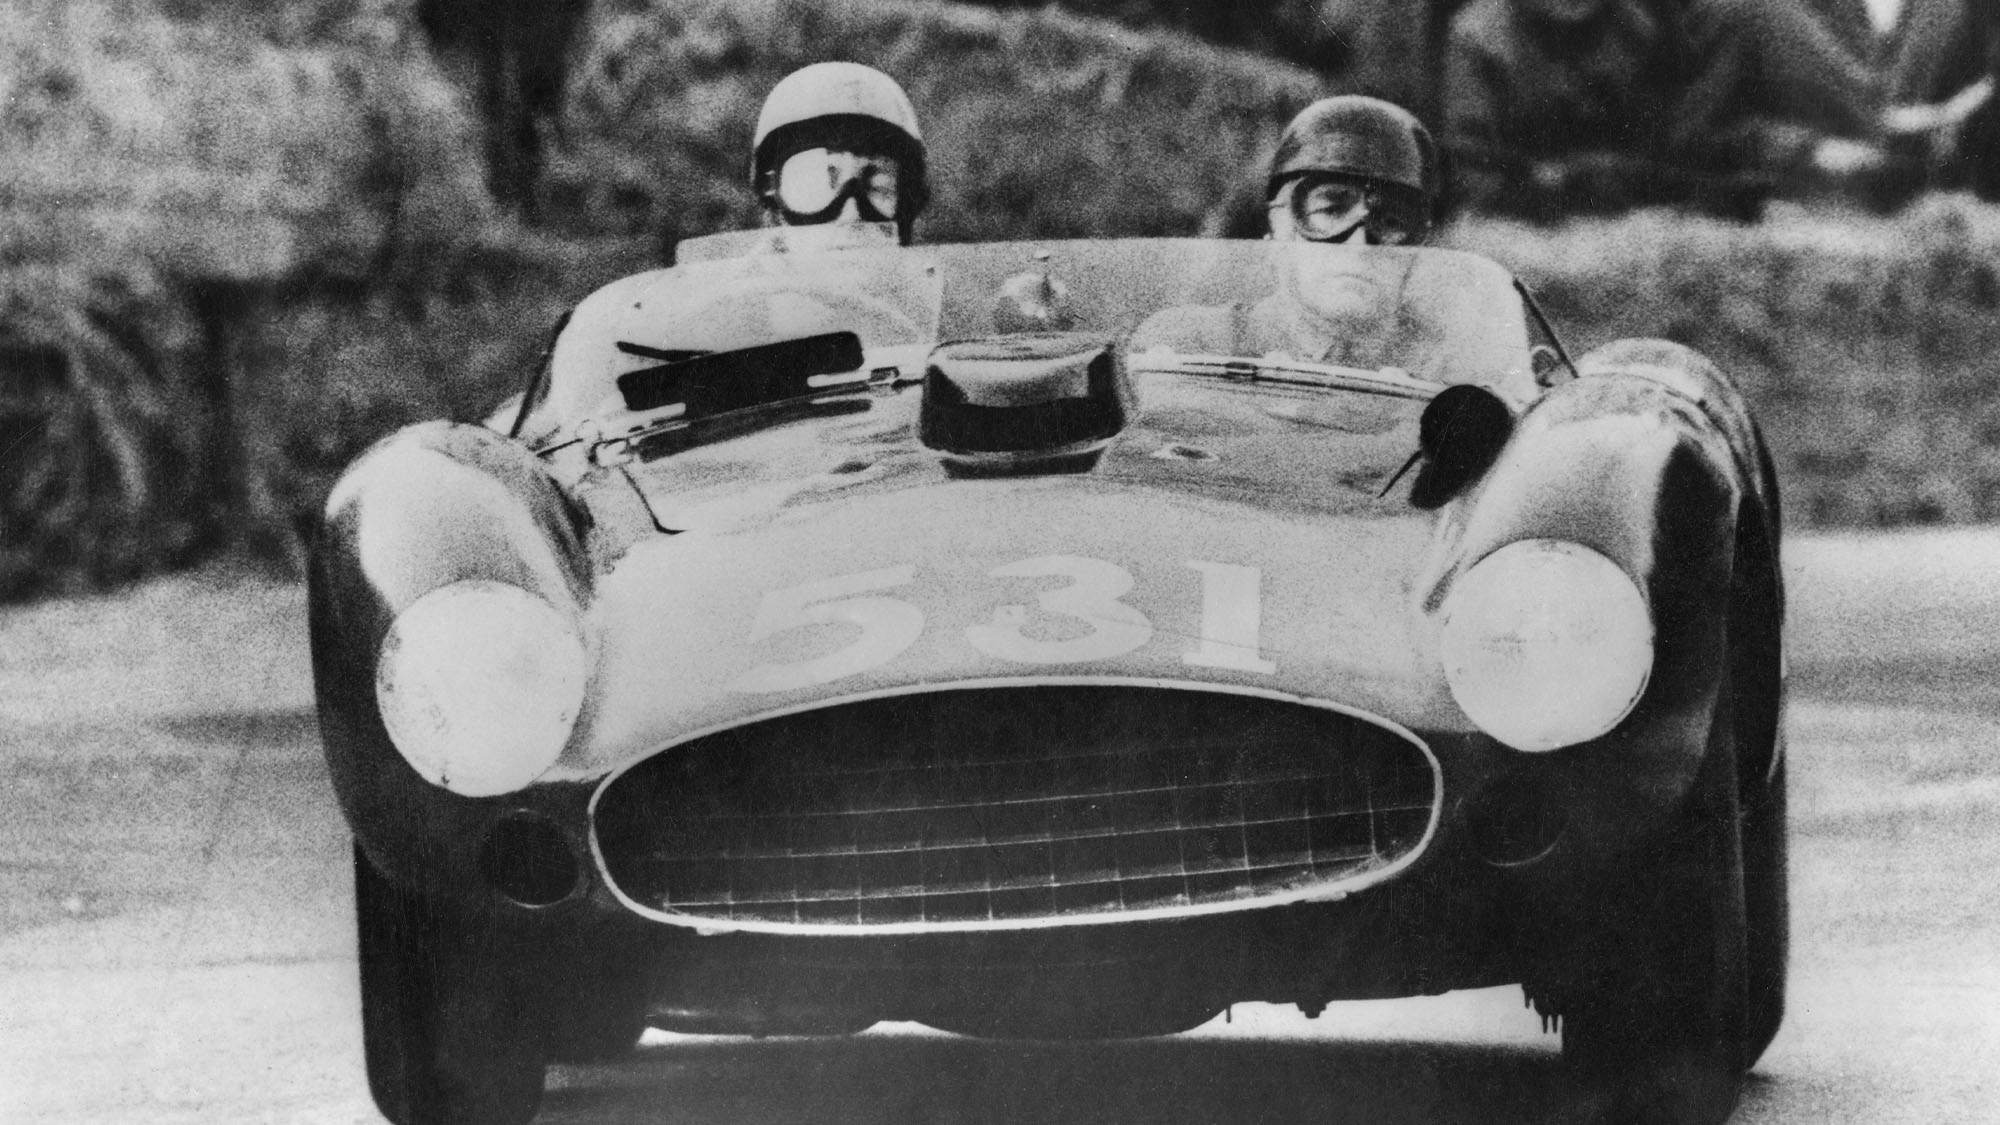 Spanish aristocrat and racing driver Alfonso de Portago, the Marquis of Portago (1928 - 1957) and his co-driver Edmund Nelson in their Ferrari at Peschiera in Italy during the Italian Mille Miglia road race, 12th May 1957. Shortly after the picture was taken, they were both killed, along with several spectators, when their car crashed into the crowd. (Photo by Keystone/Hulton Archive/Getty Images)